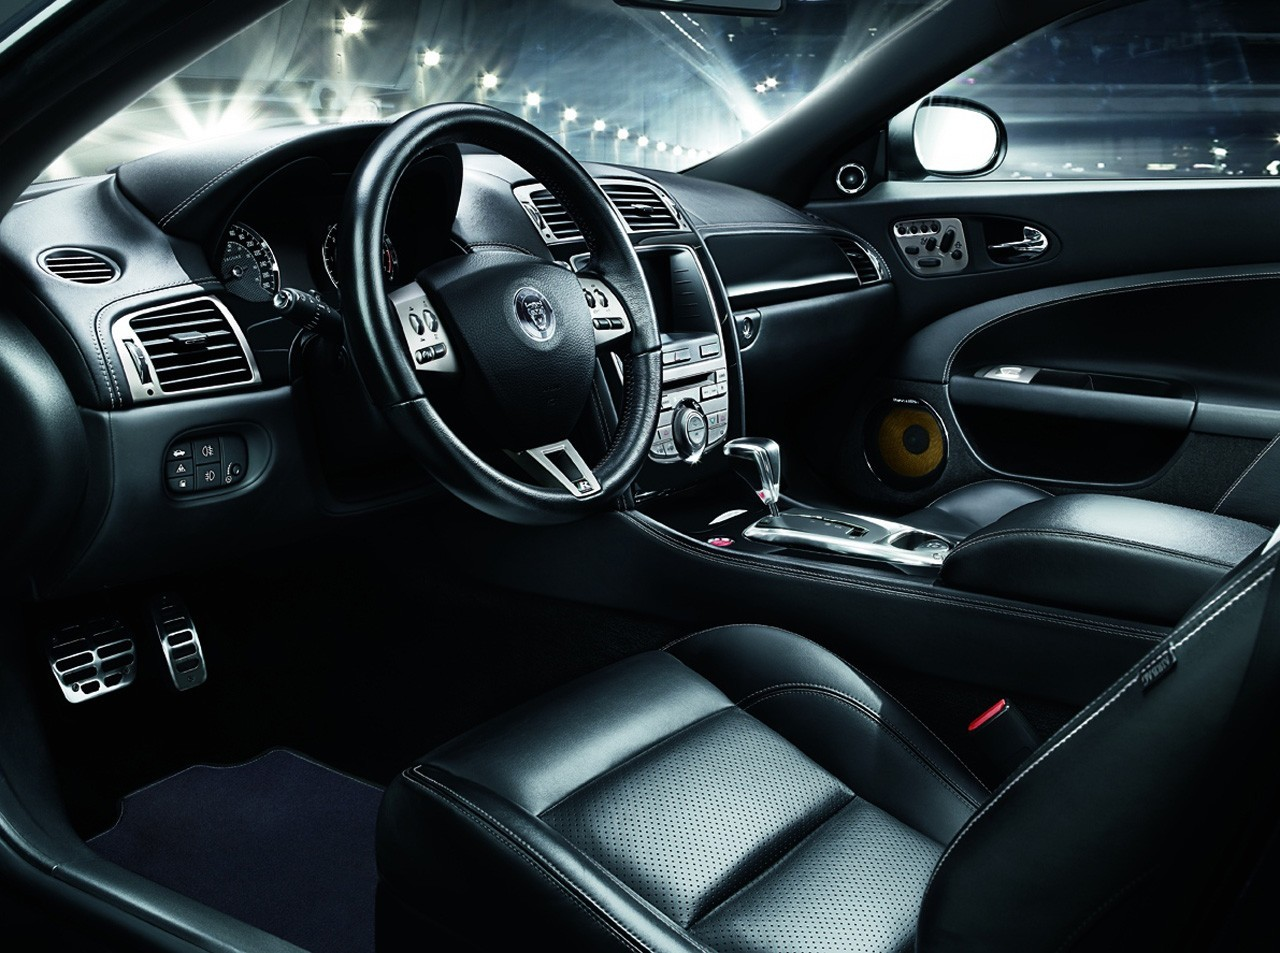 jaguar xkr s car review 2012 and pictures luxury cars never die. Black Bedroom Furniture Sets. Home Design Ideas